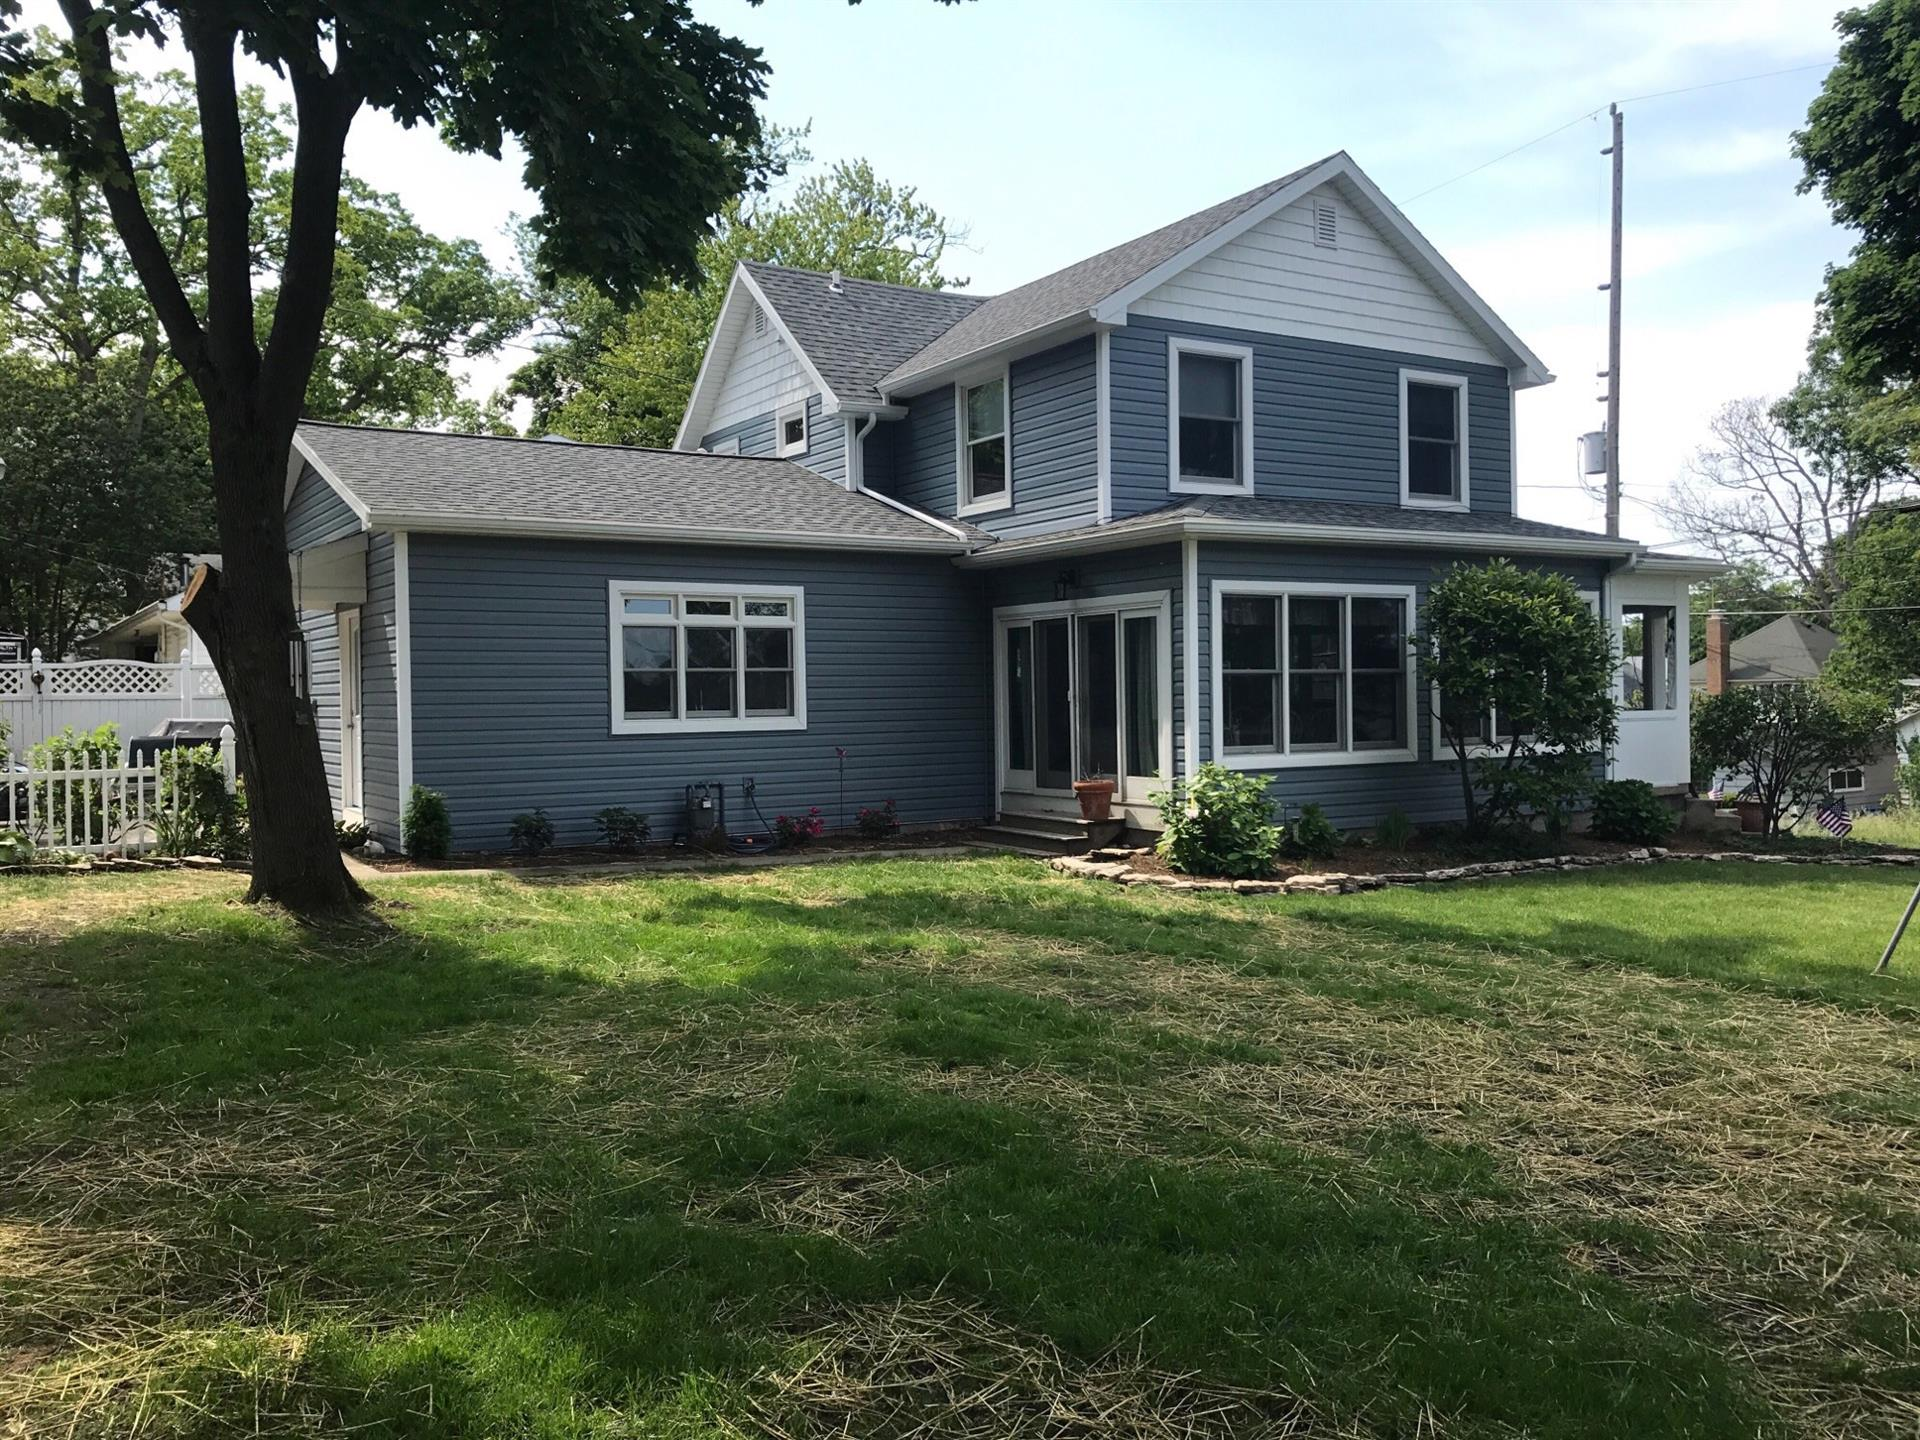 Single Family for Rent at 916 E. Third Street 916 E. Third Street Lakeside, Ohio 43440 United States